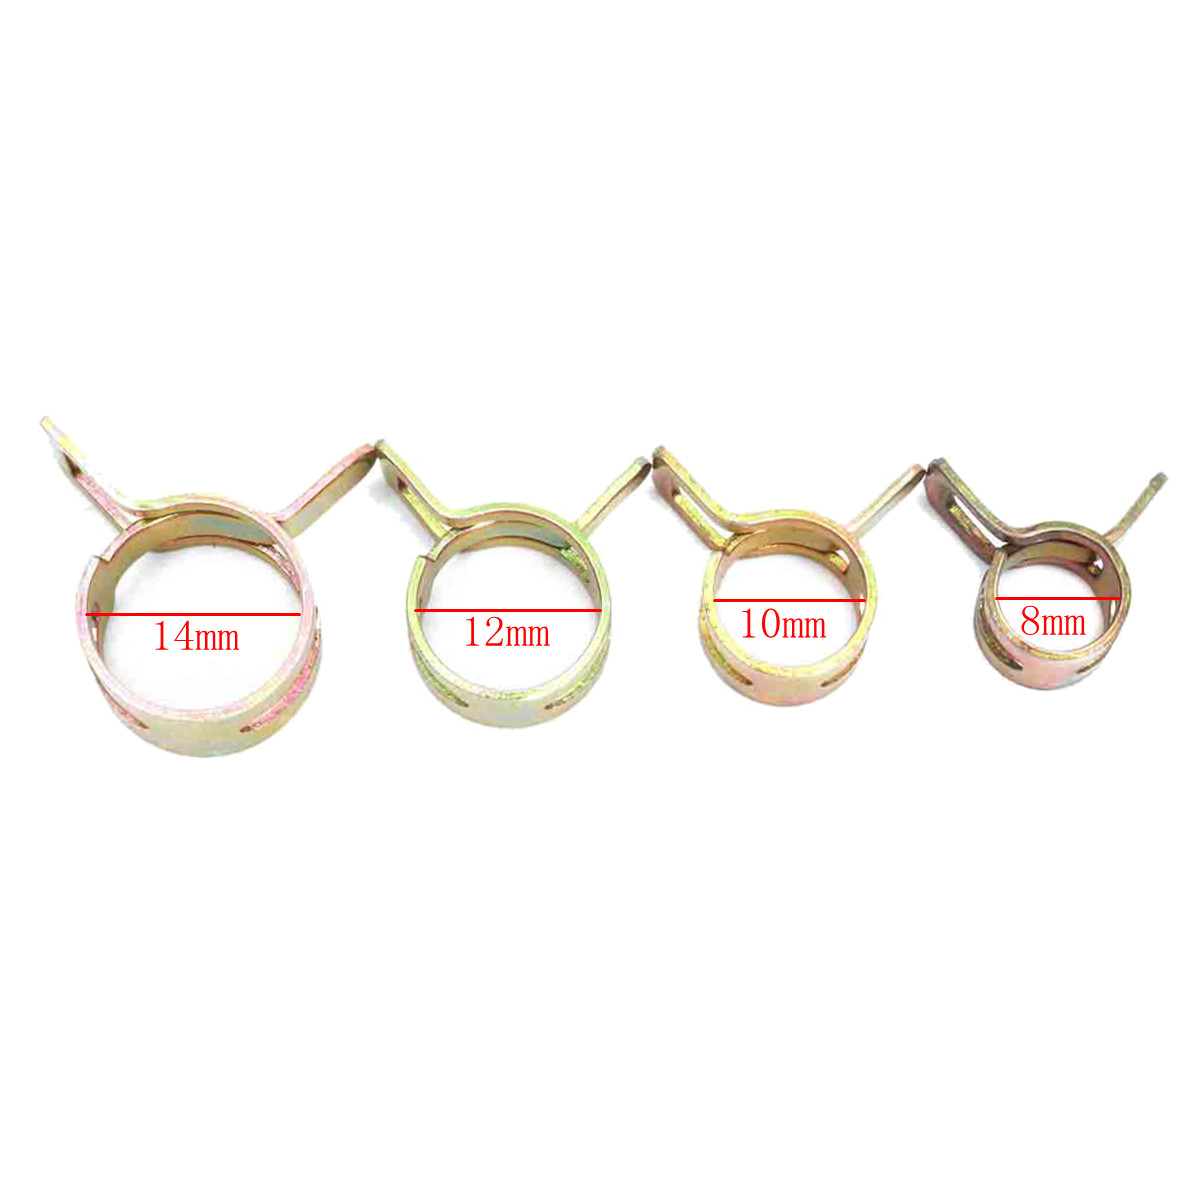 10pcs 8mm/10m/12mm/14mm Spring Clip Fuel Hose Line Pipe Tube Band Clamp Fastener